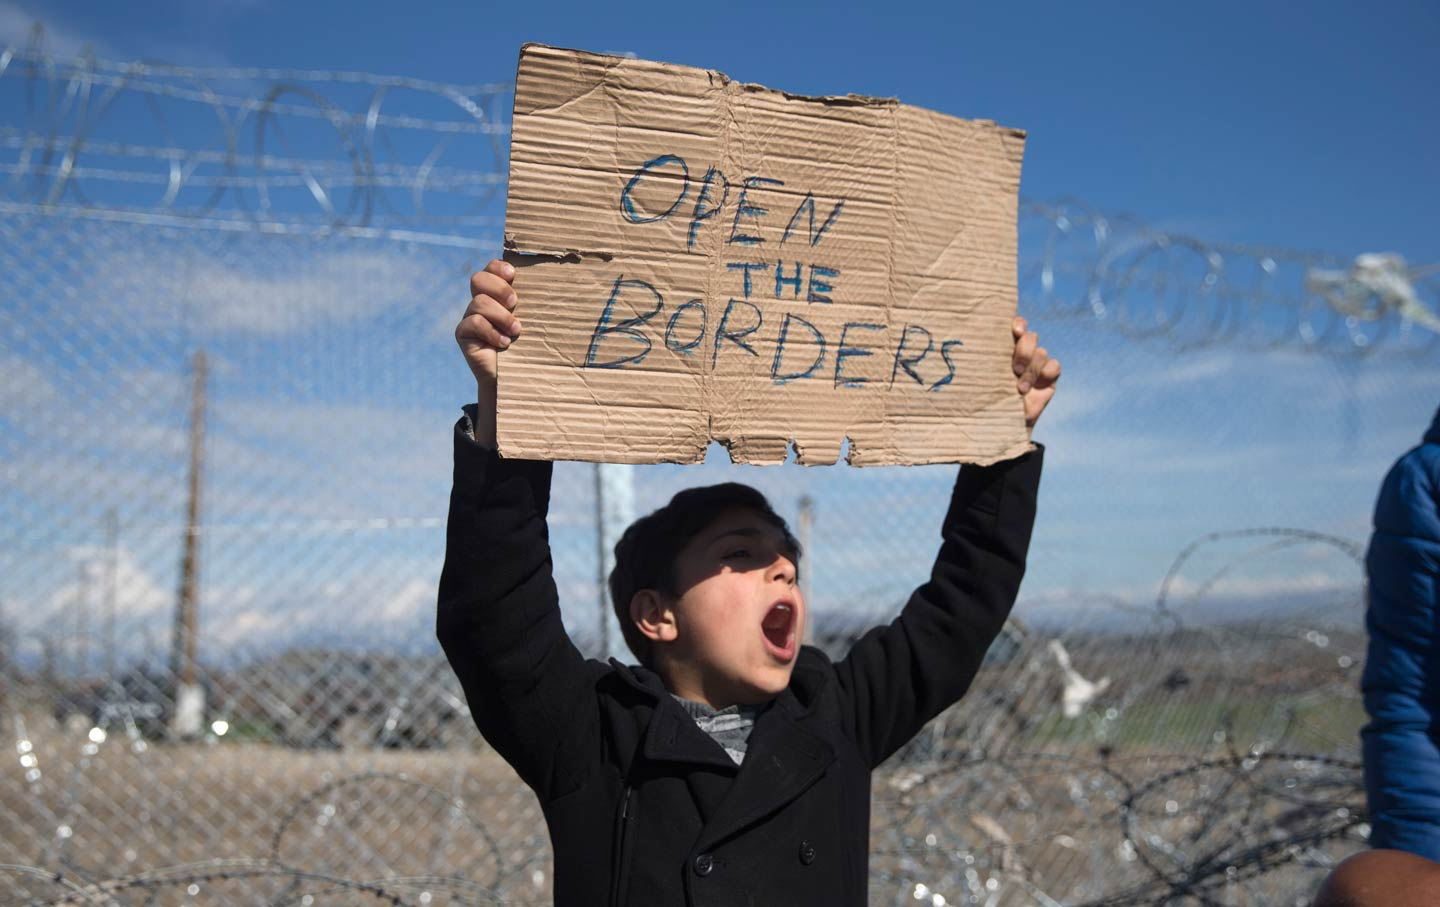 Refugee holding a sign